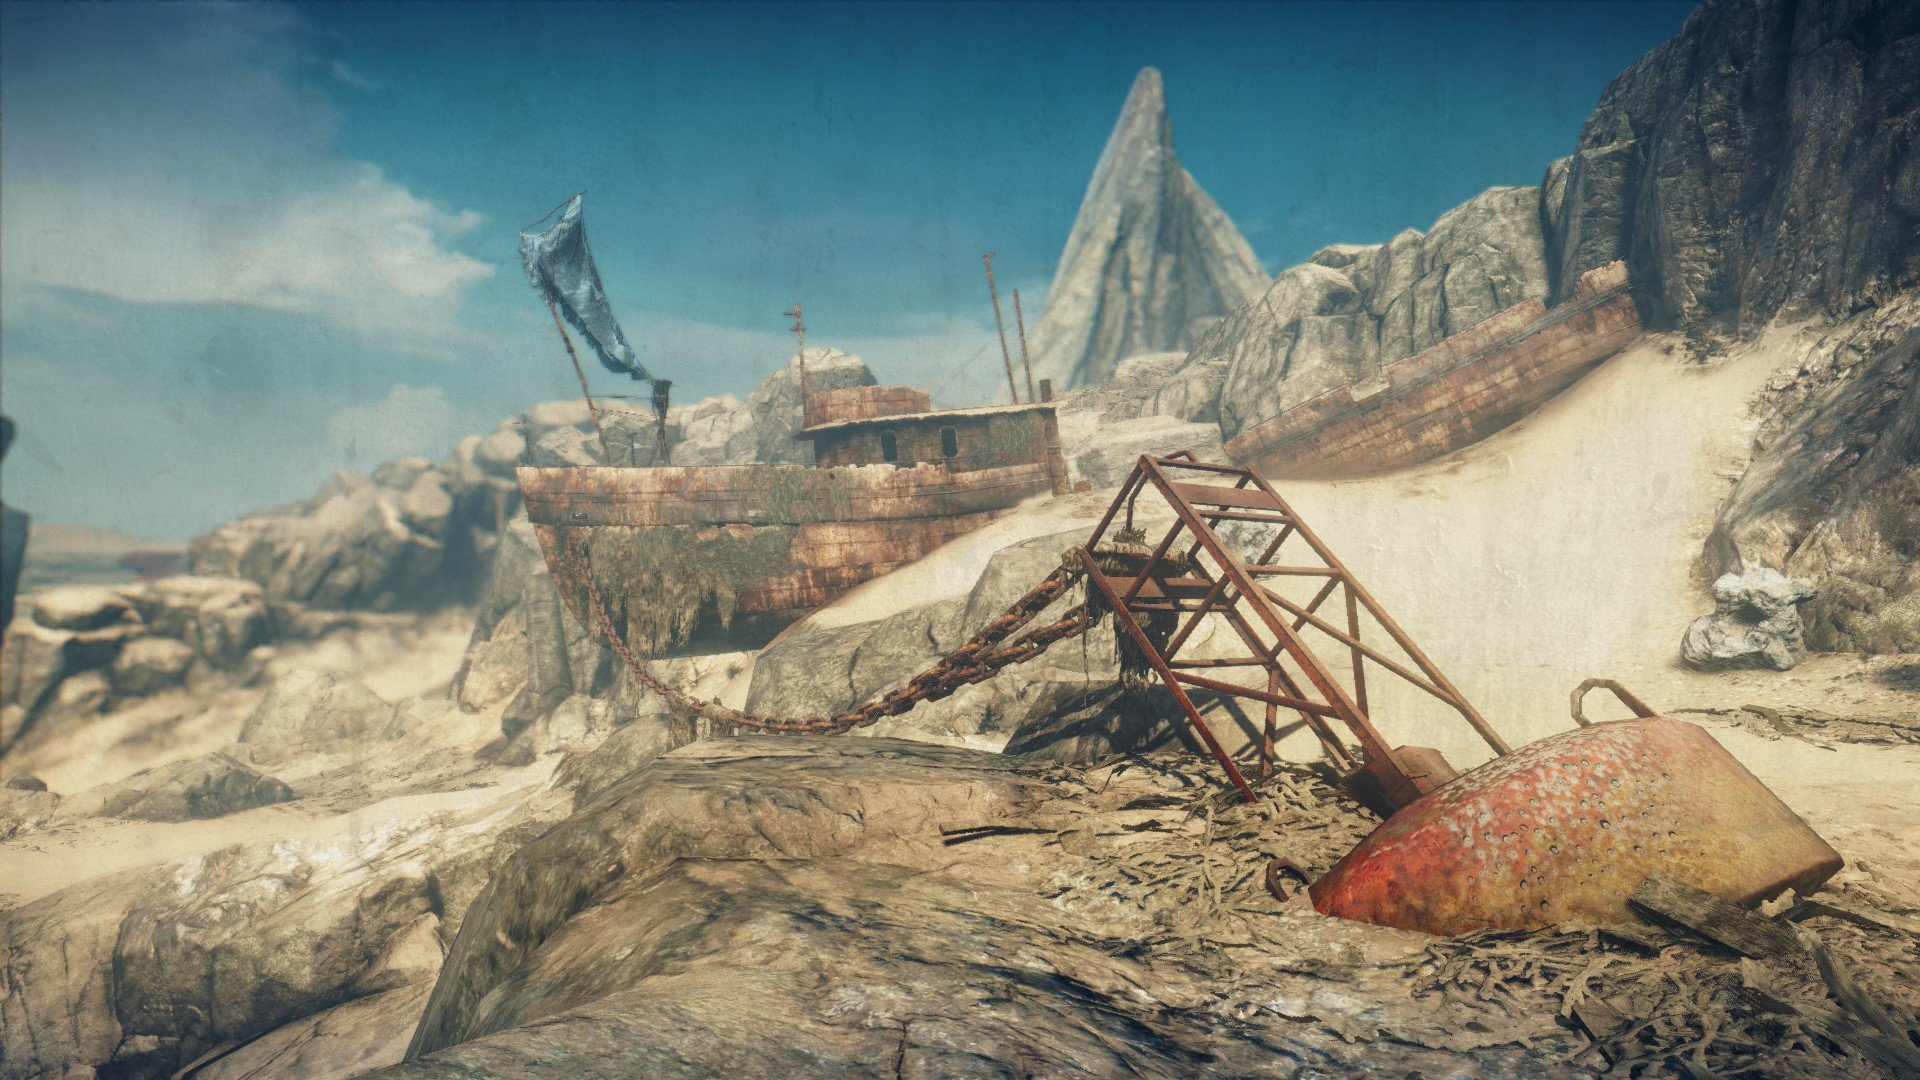 Download 1080p Mad Max Video Game Desktop Wallpaper Id315105 For Free